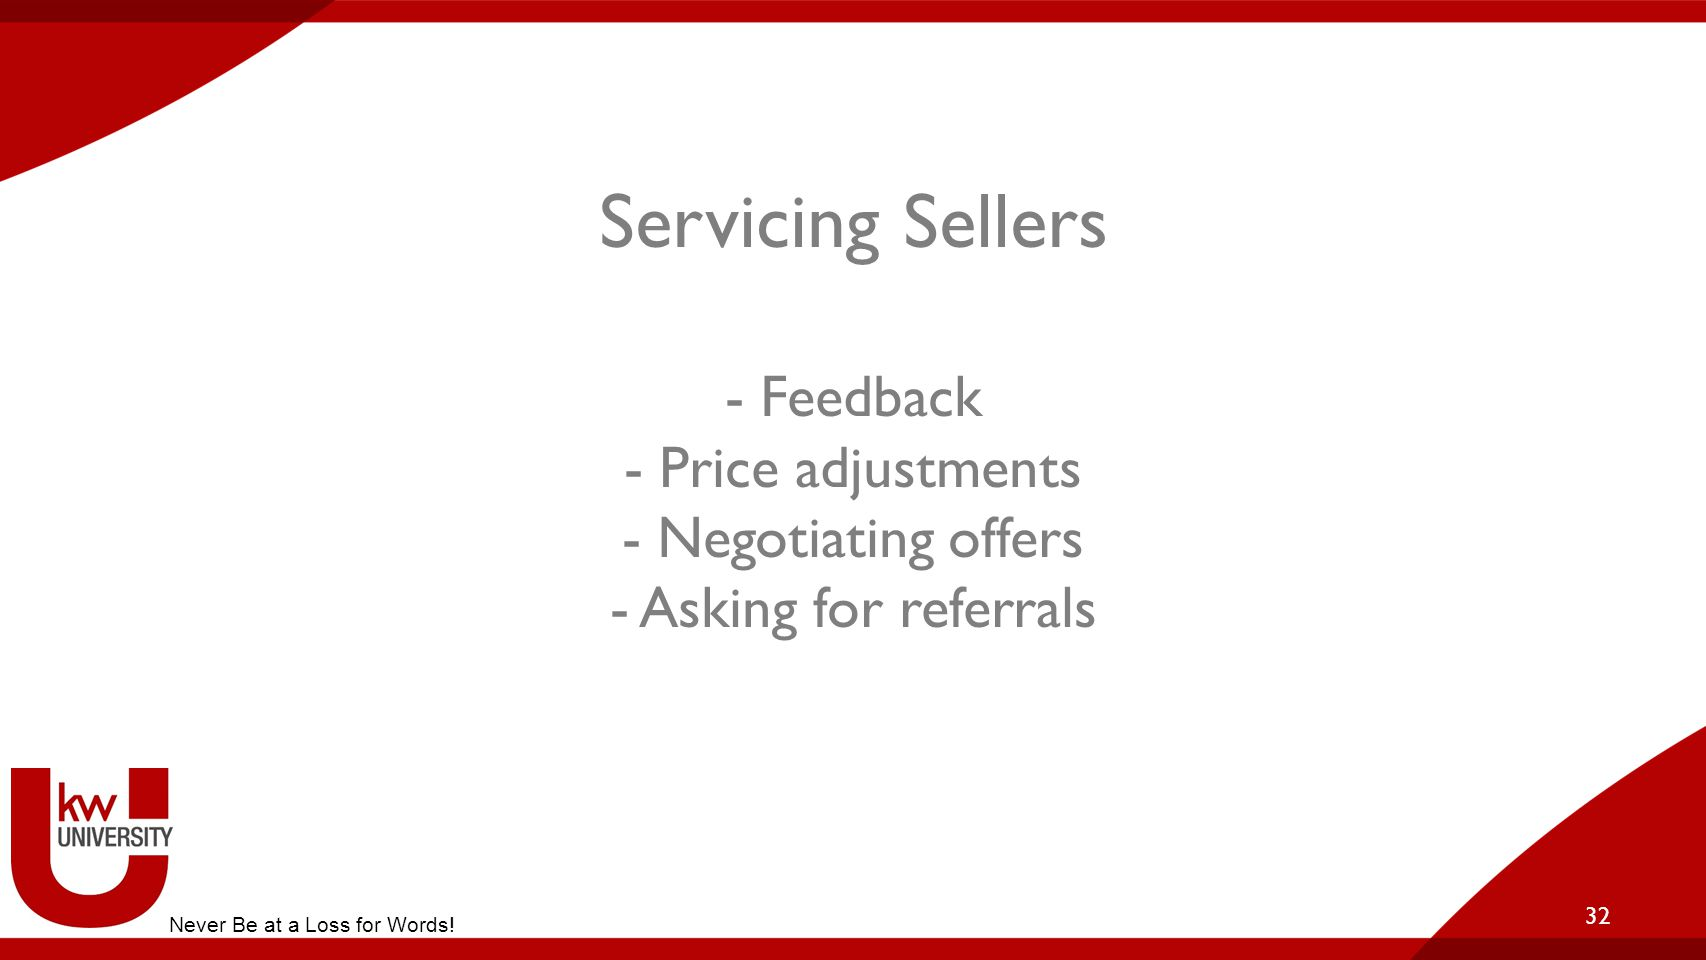 Servicing Sellers - Feedback - Price adjustments - Negotiating offers - Asking for referrals